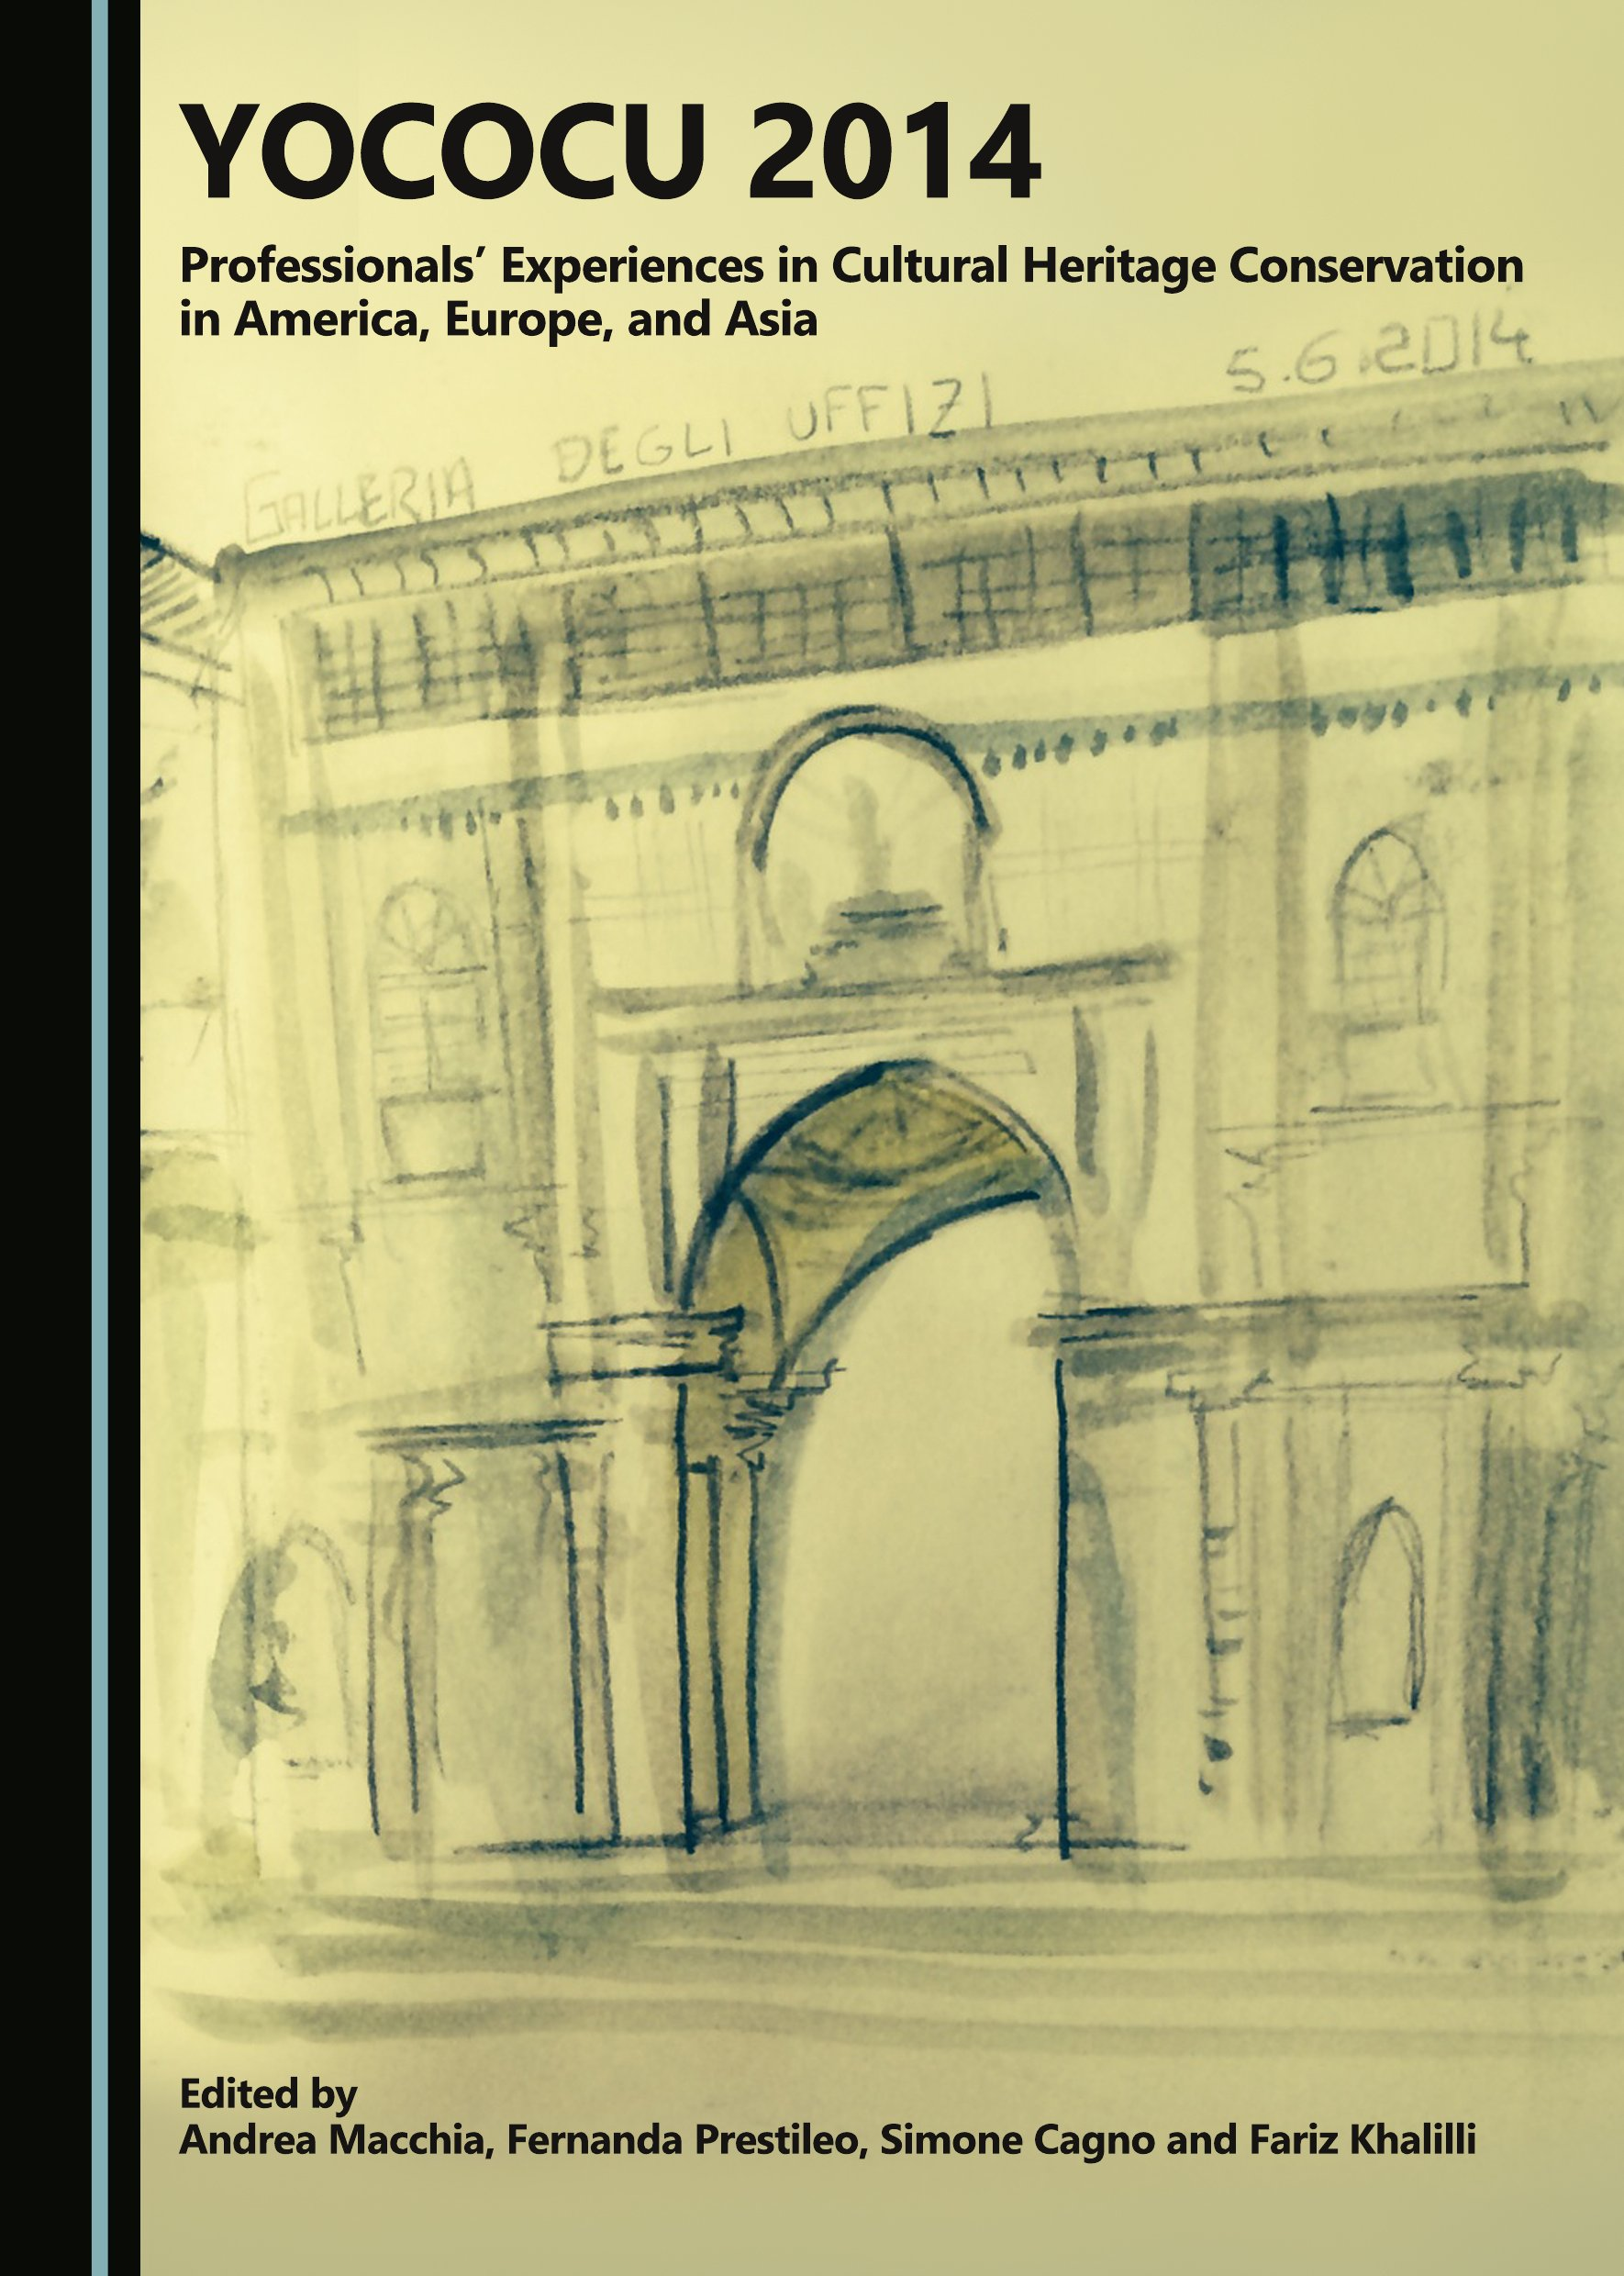 YOCOCU 2014: Professionals' Experiences in Cultural Heritage Conservation in America, Europe, and Asia